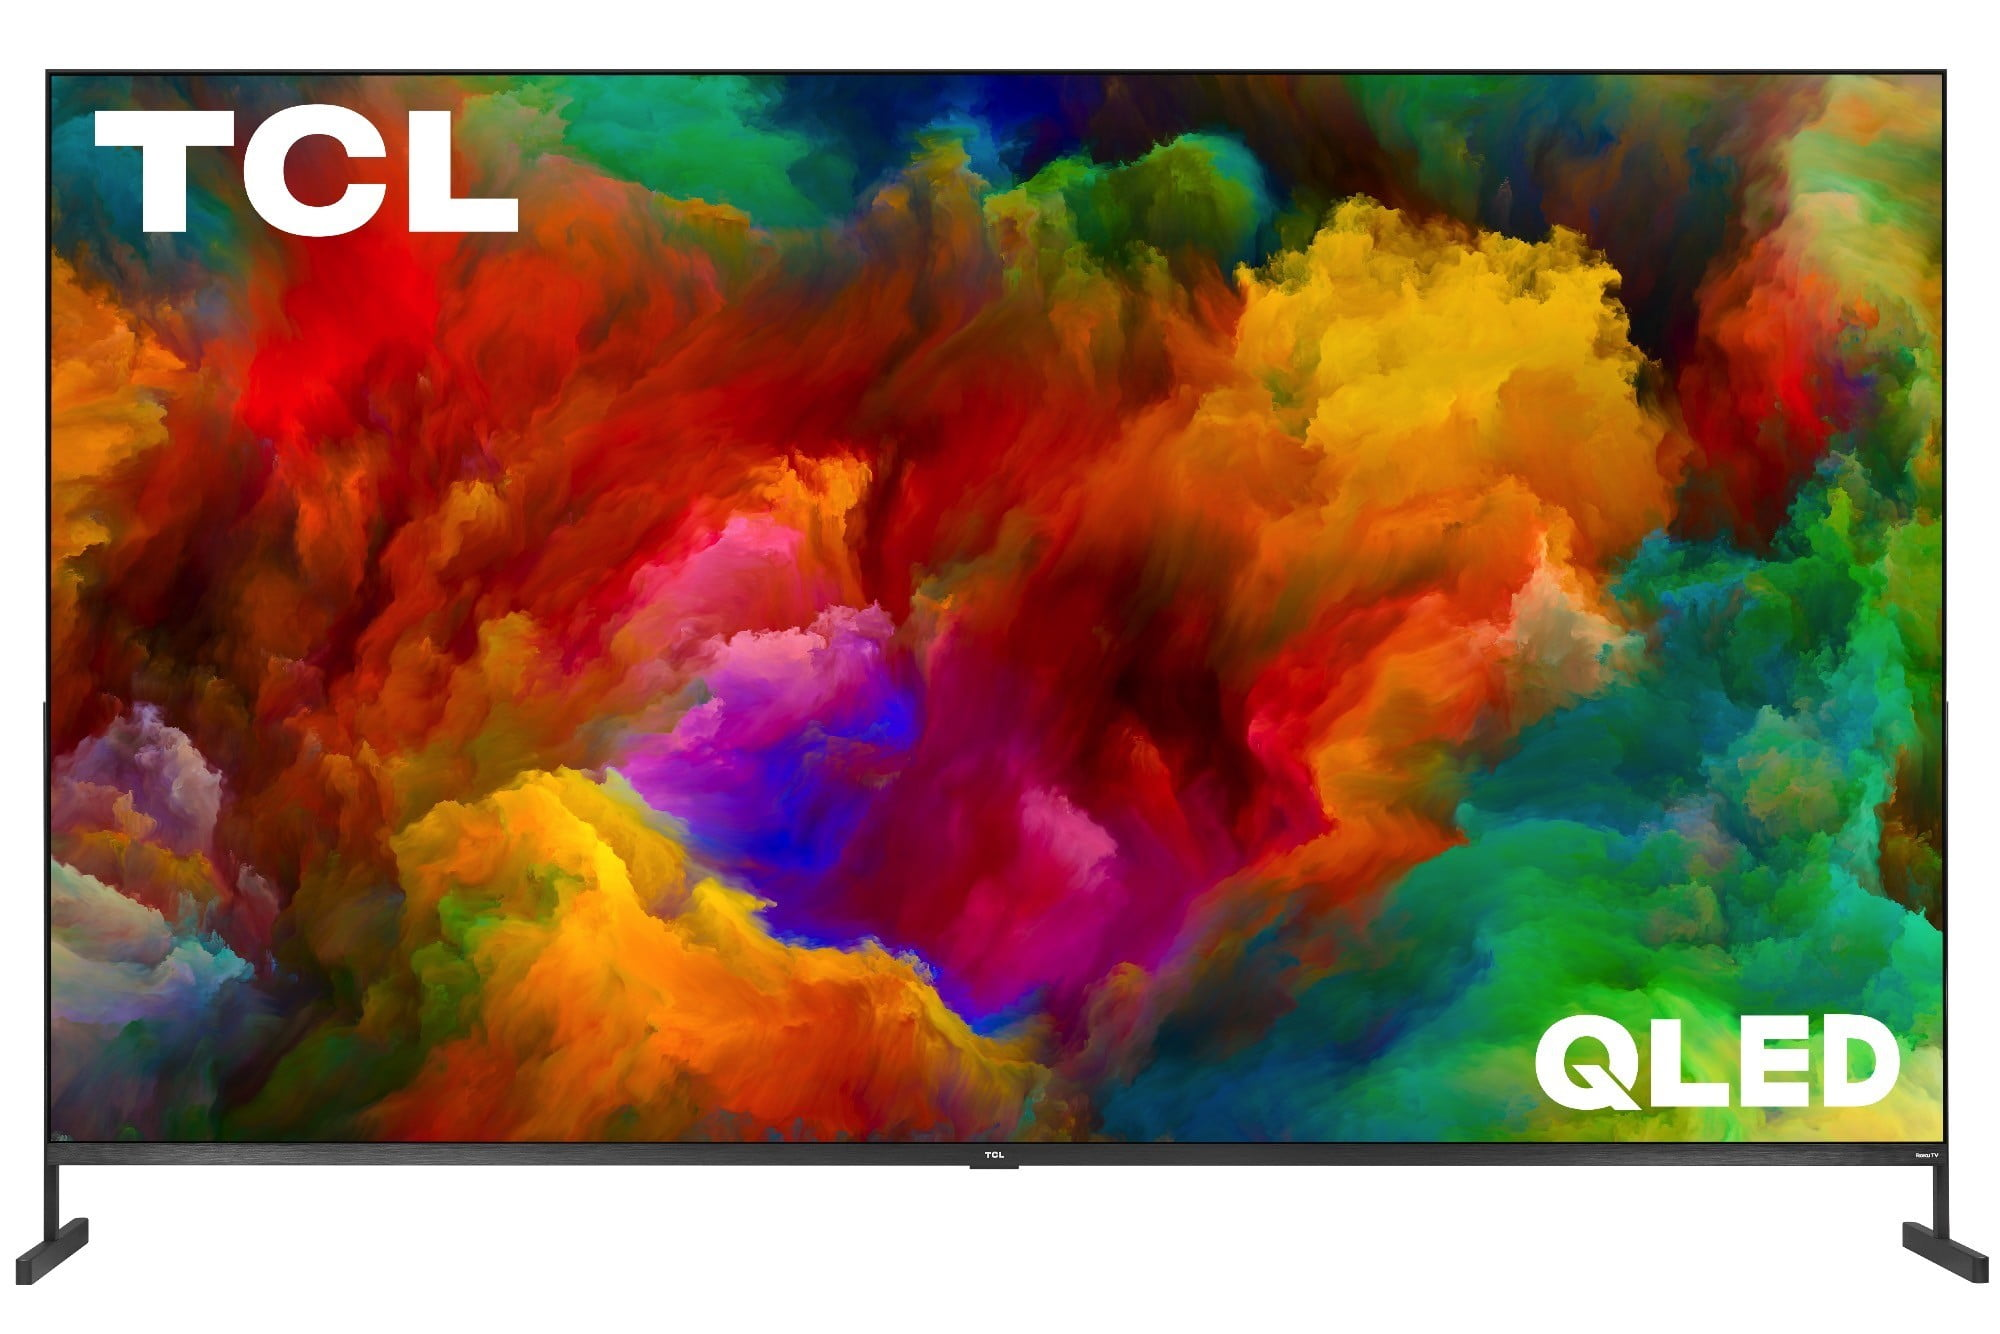 TCL 85s745 XL Collection 85-inch QLED TV